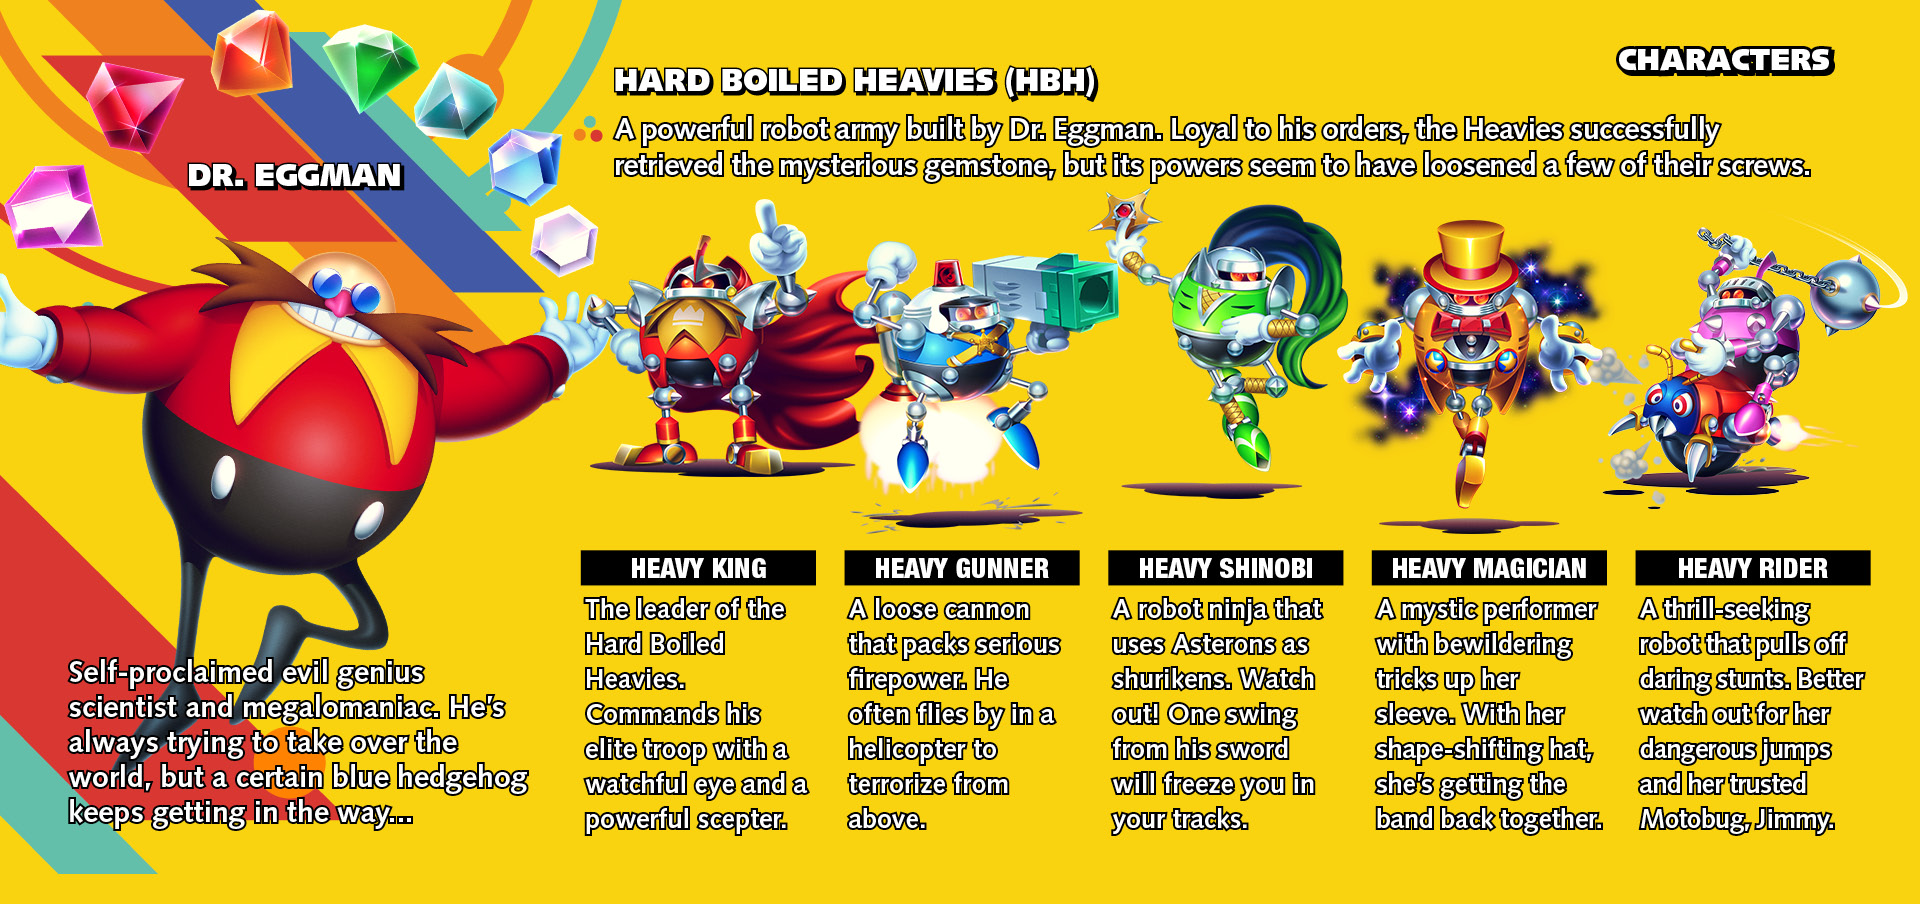 Why I Think The Hard Boiled Heavies Will Be In Forces